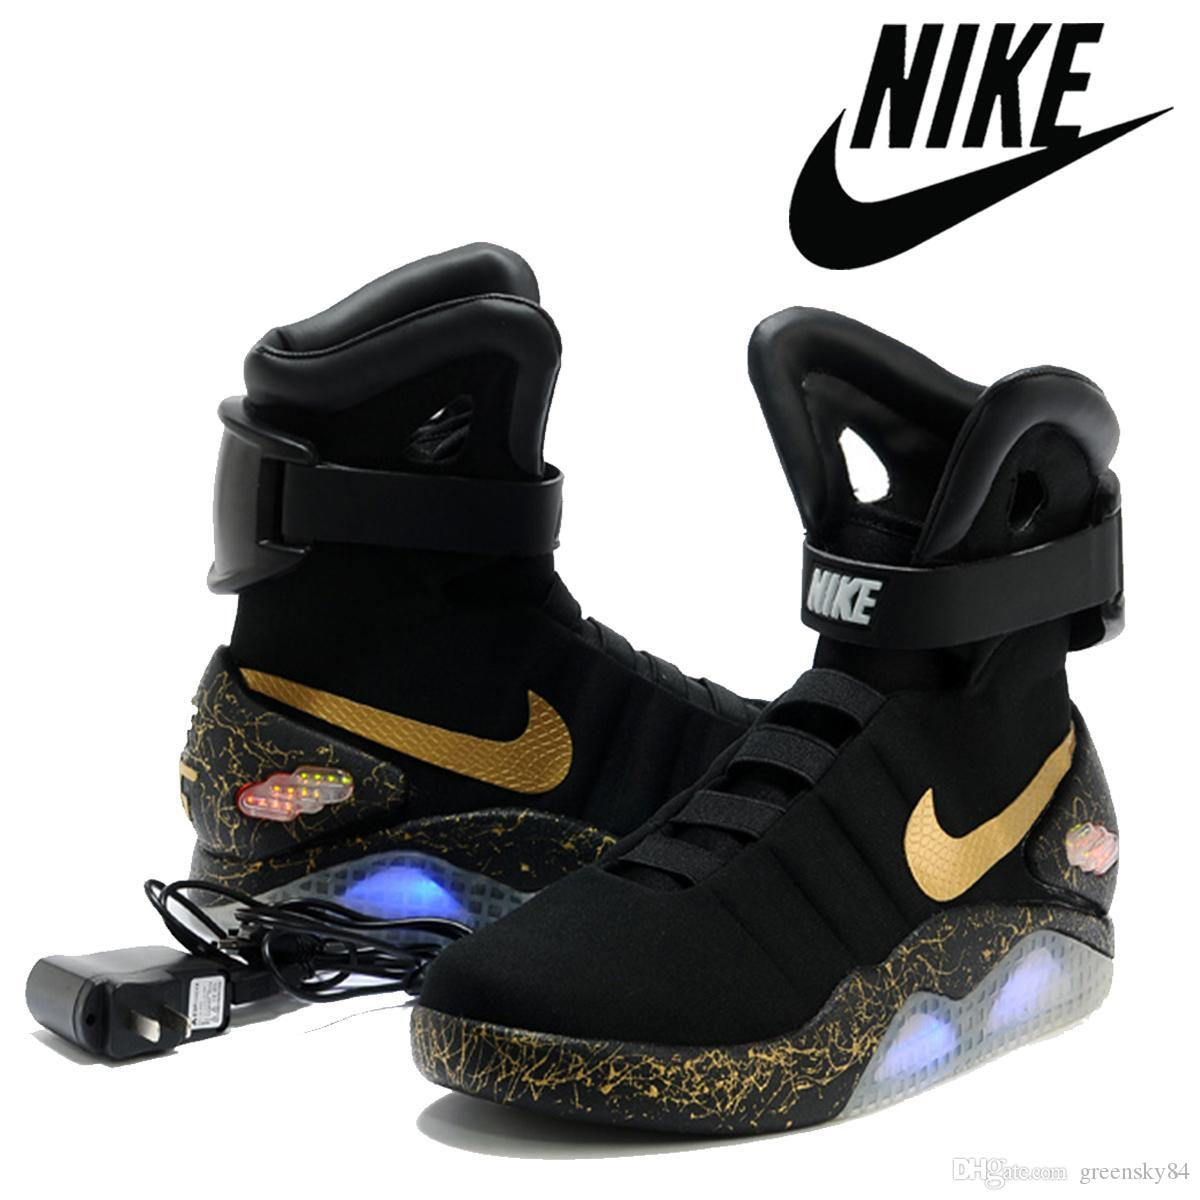 Nike Glowing Shoes Price In India